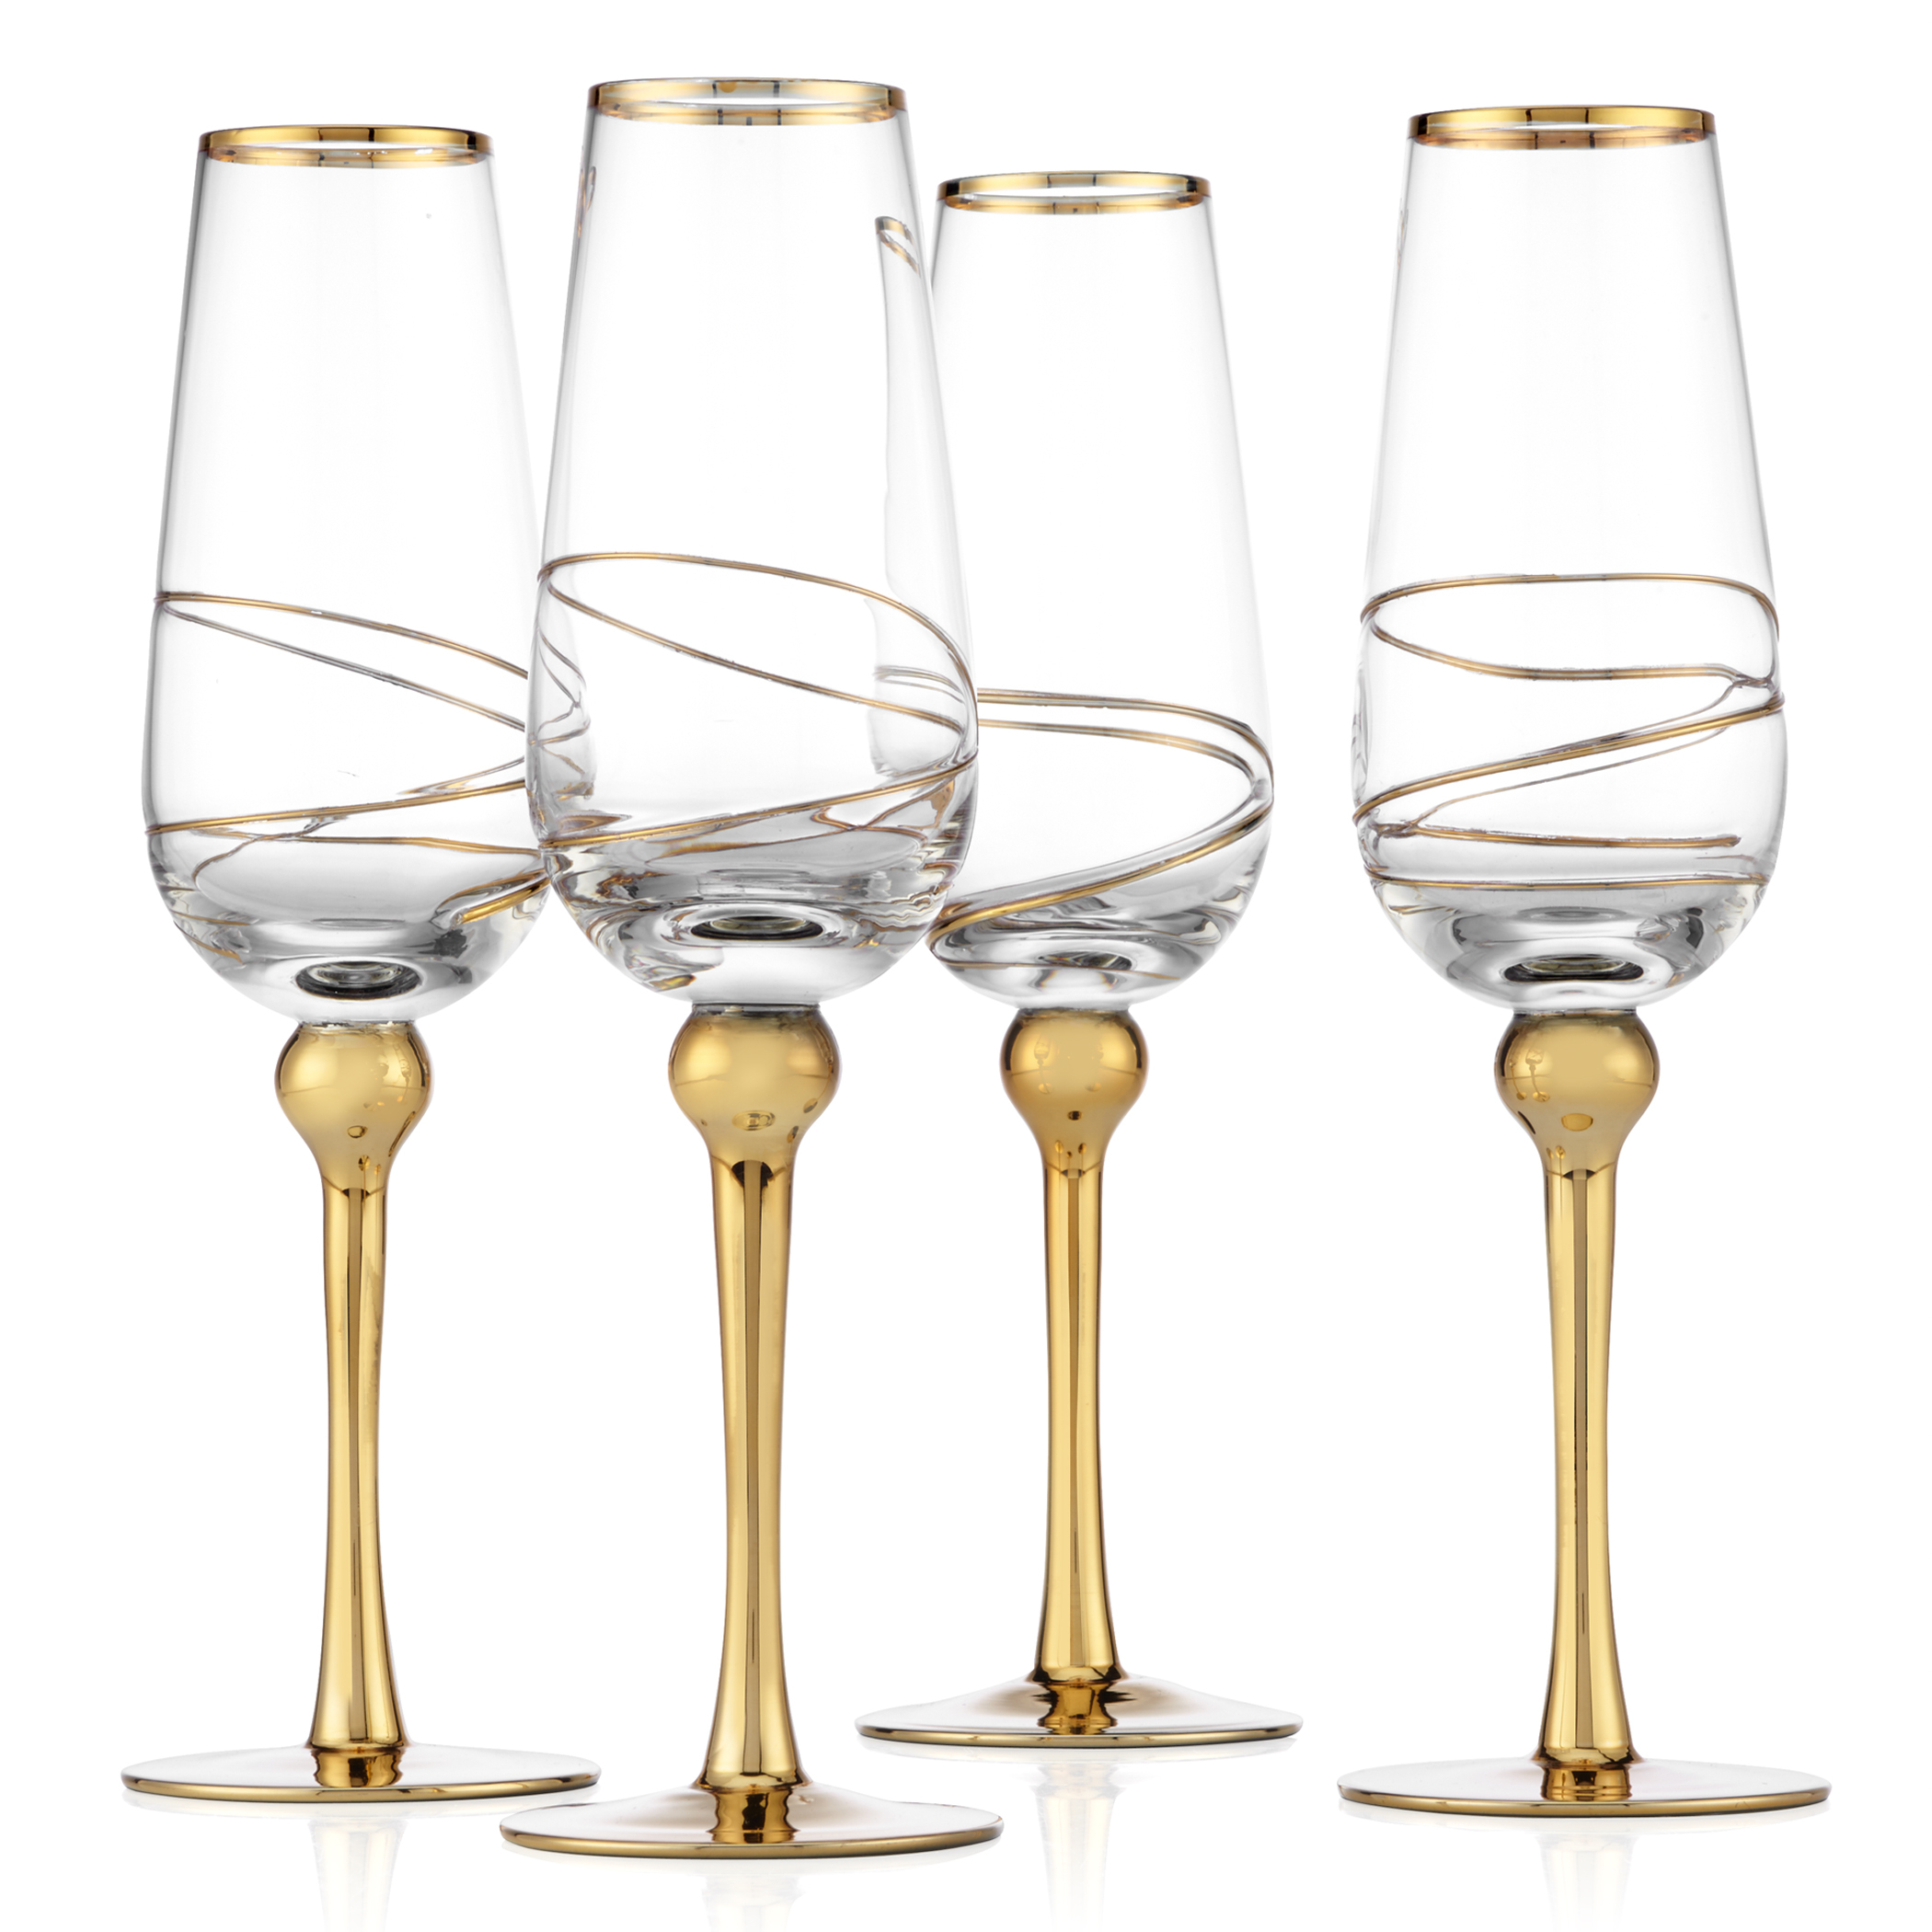 Olympia Stemware - Sets of 4